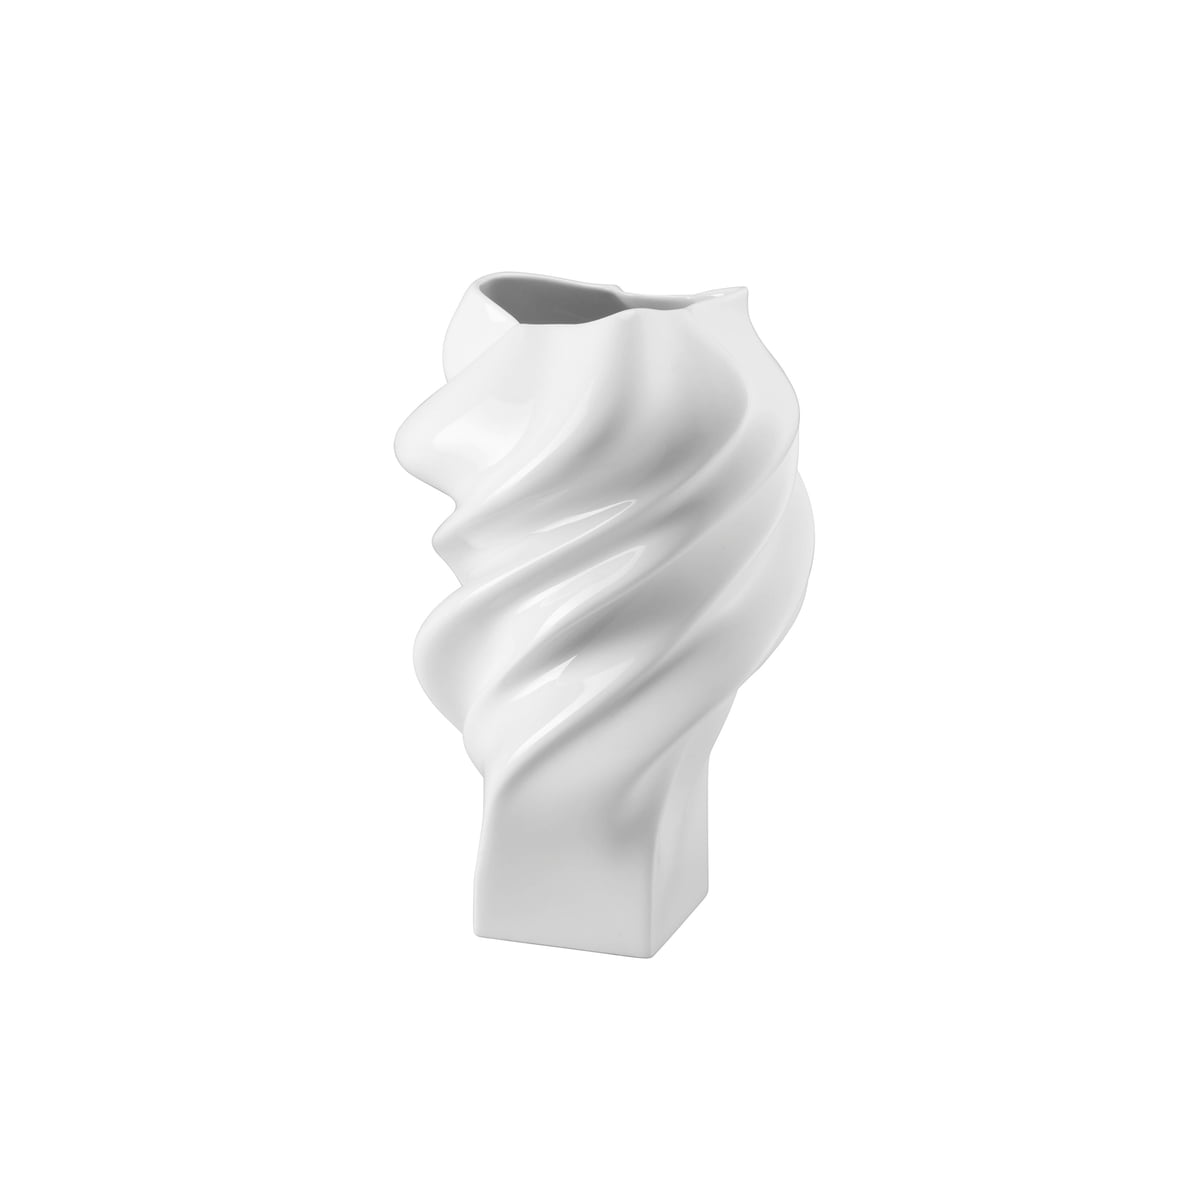 Squall Vase by Rosenthal in the shop